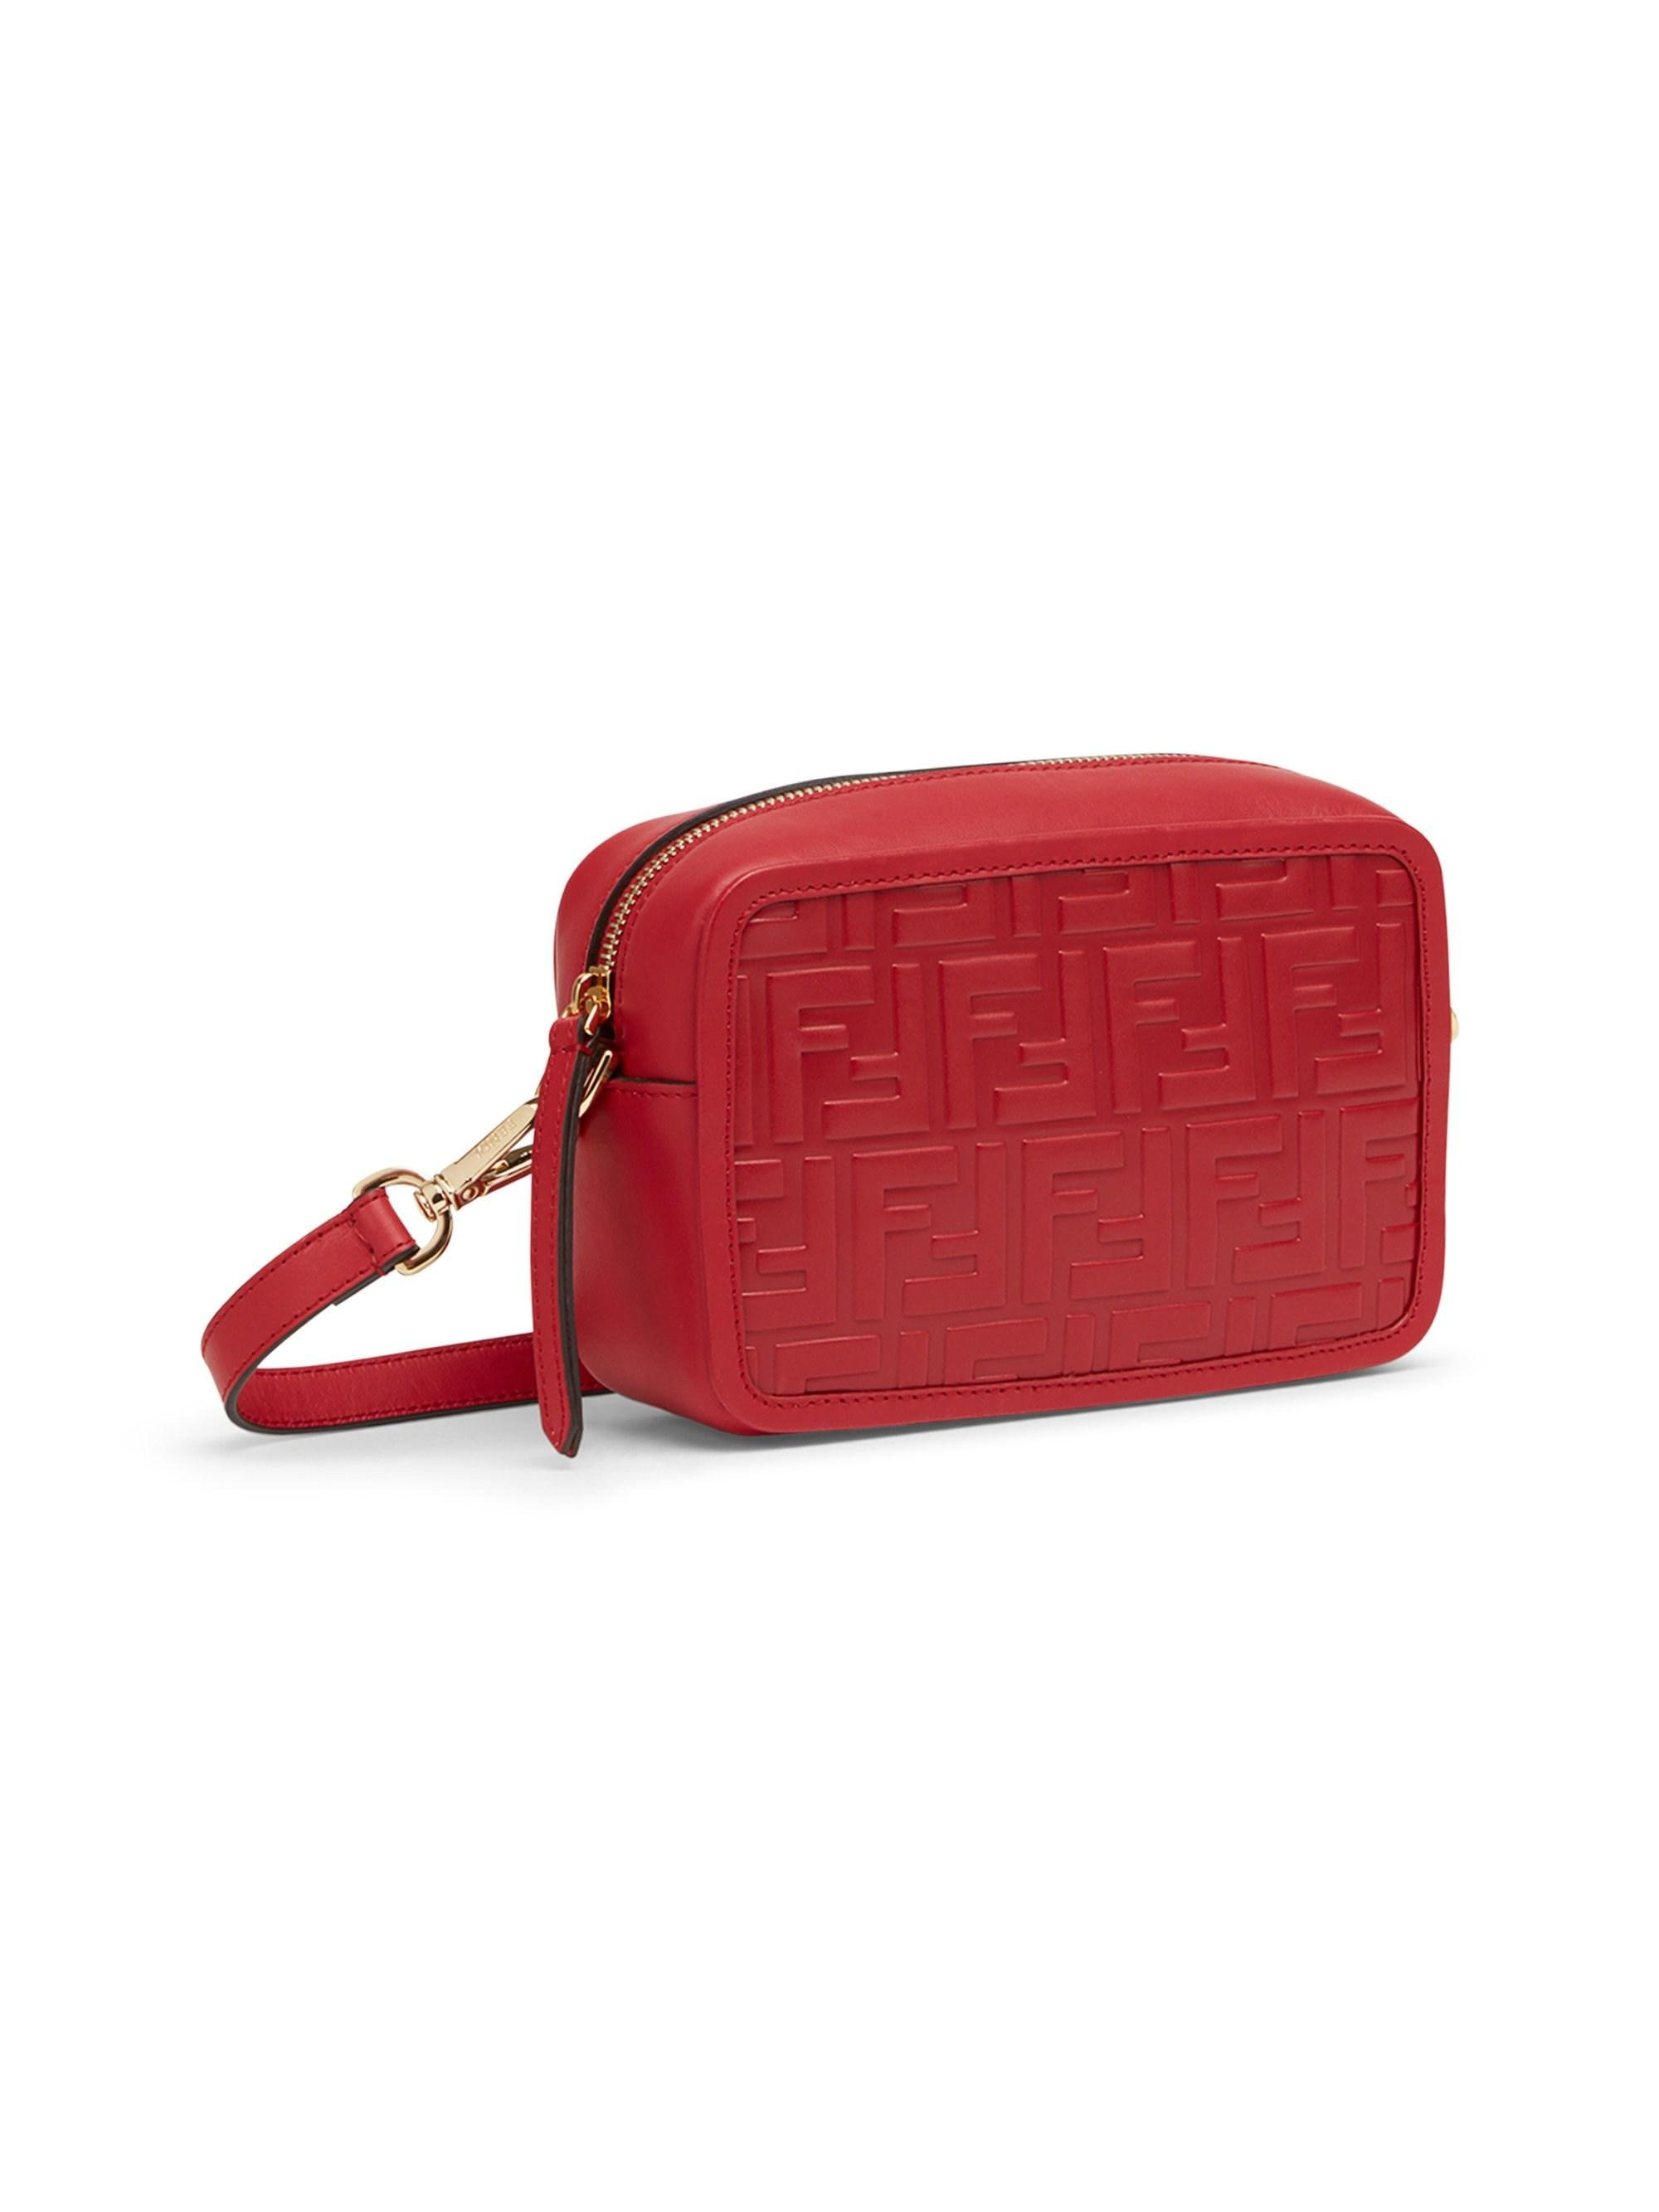 ea962b5a104 Fendi - Red Mini Ff Leather Camera Case - Lyst. View fullscreen